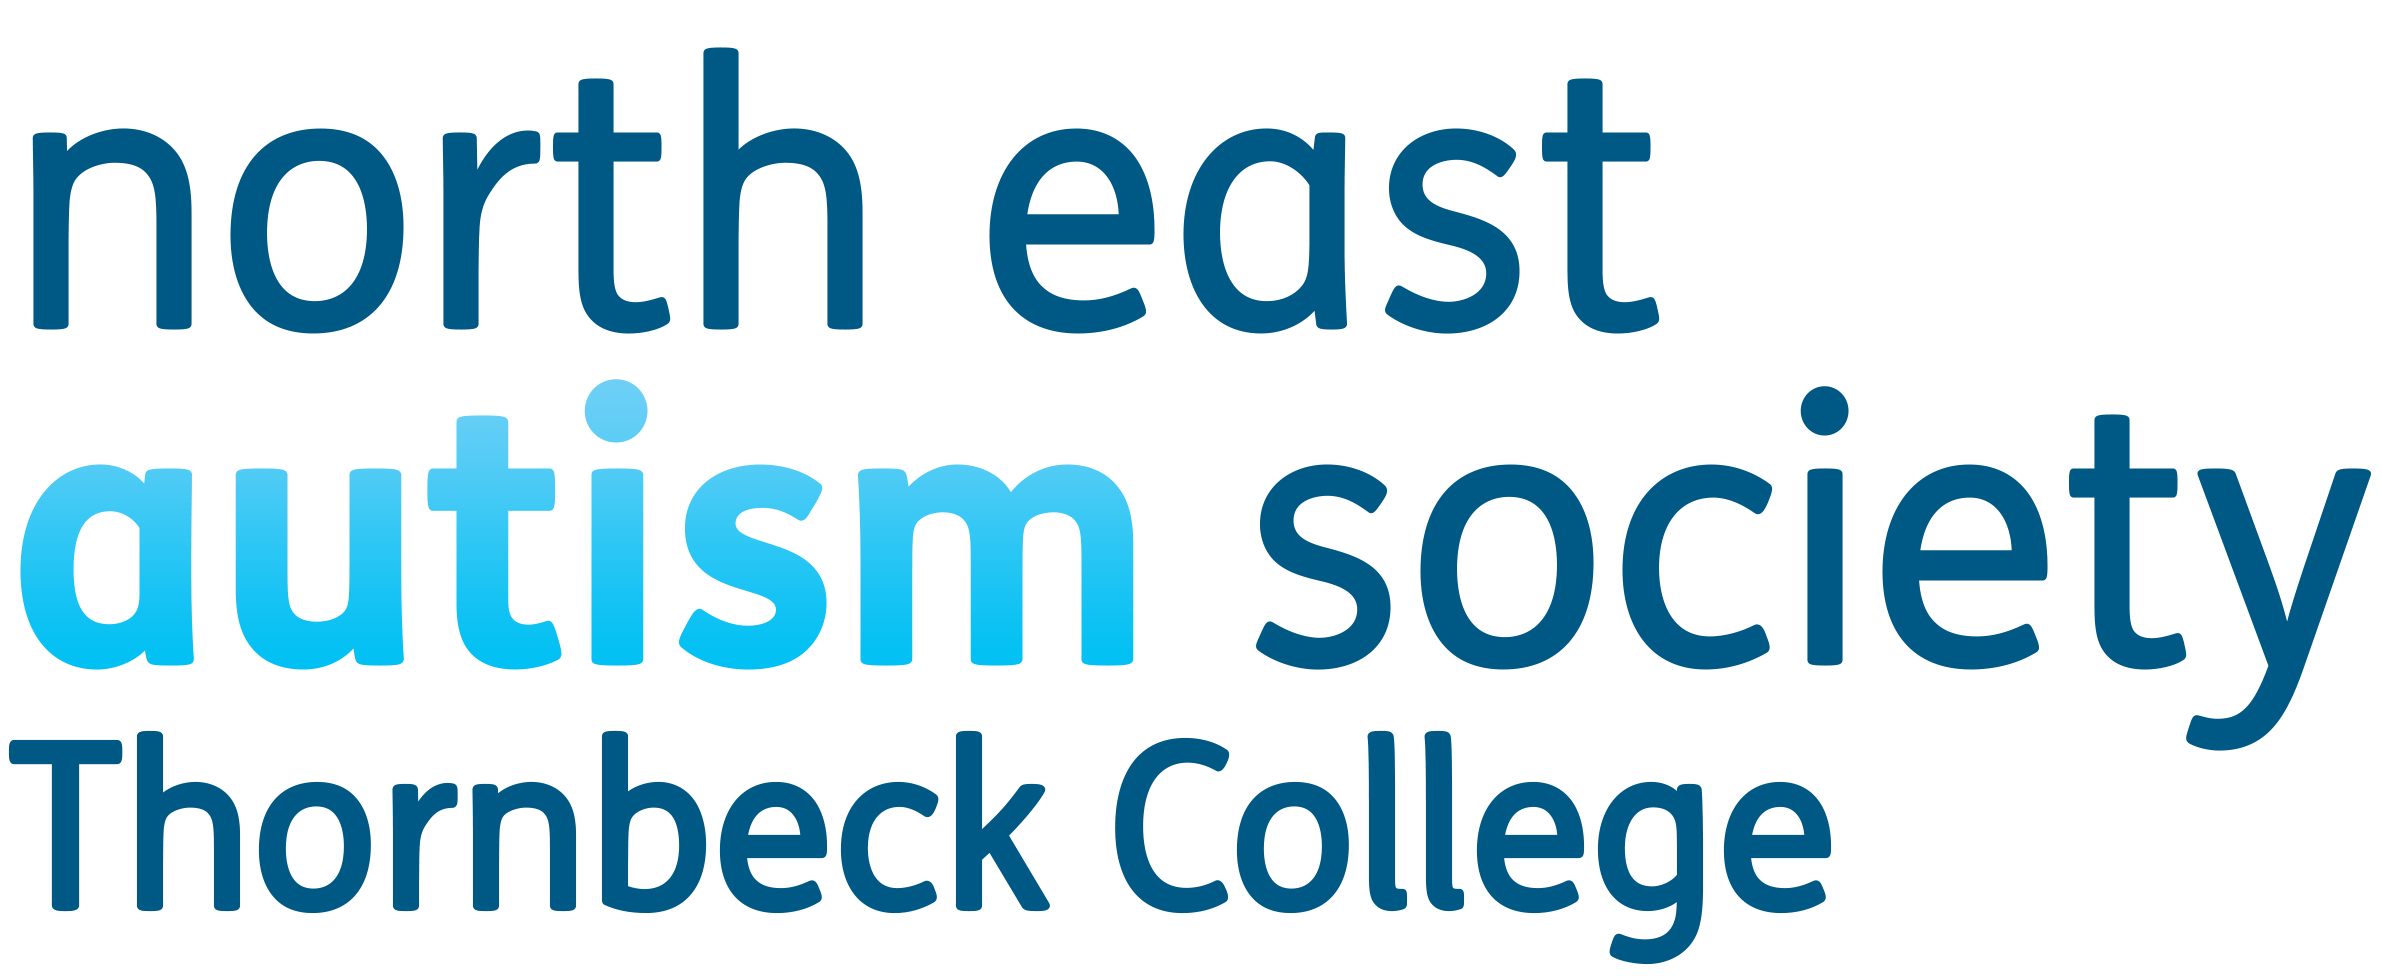 Thornbeck College - North East Autism Society logo